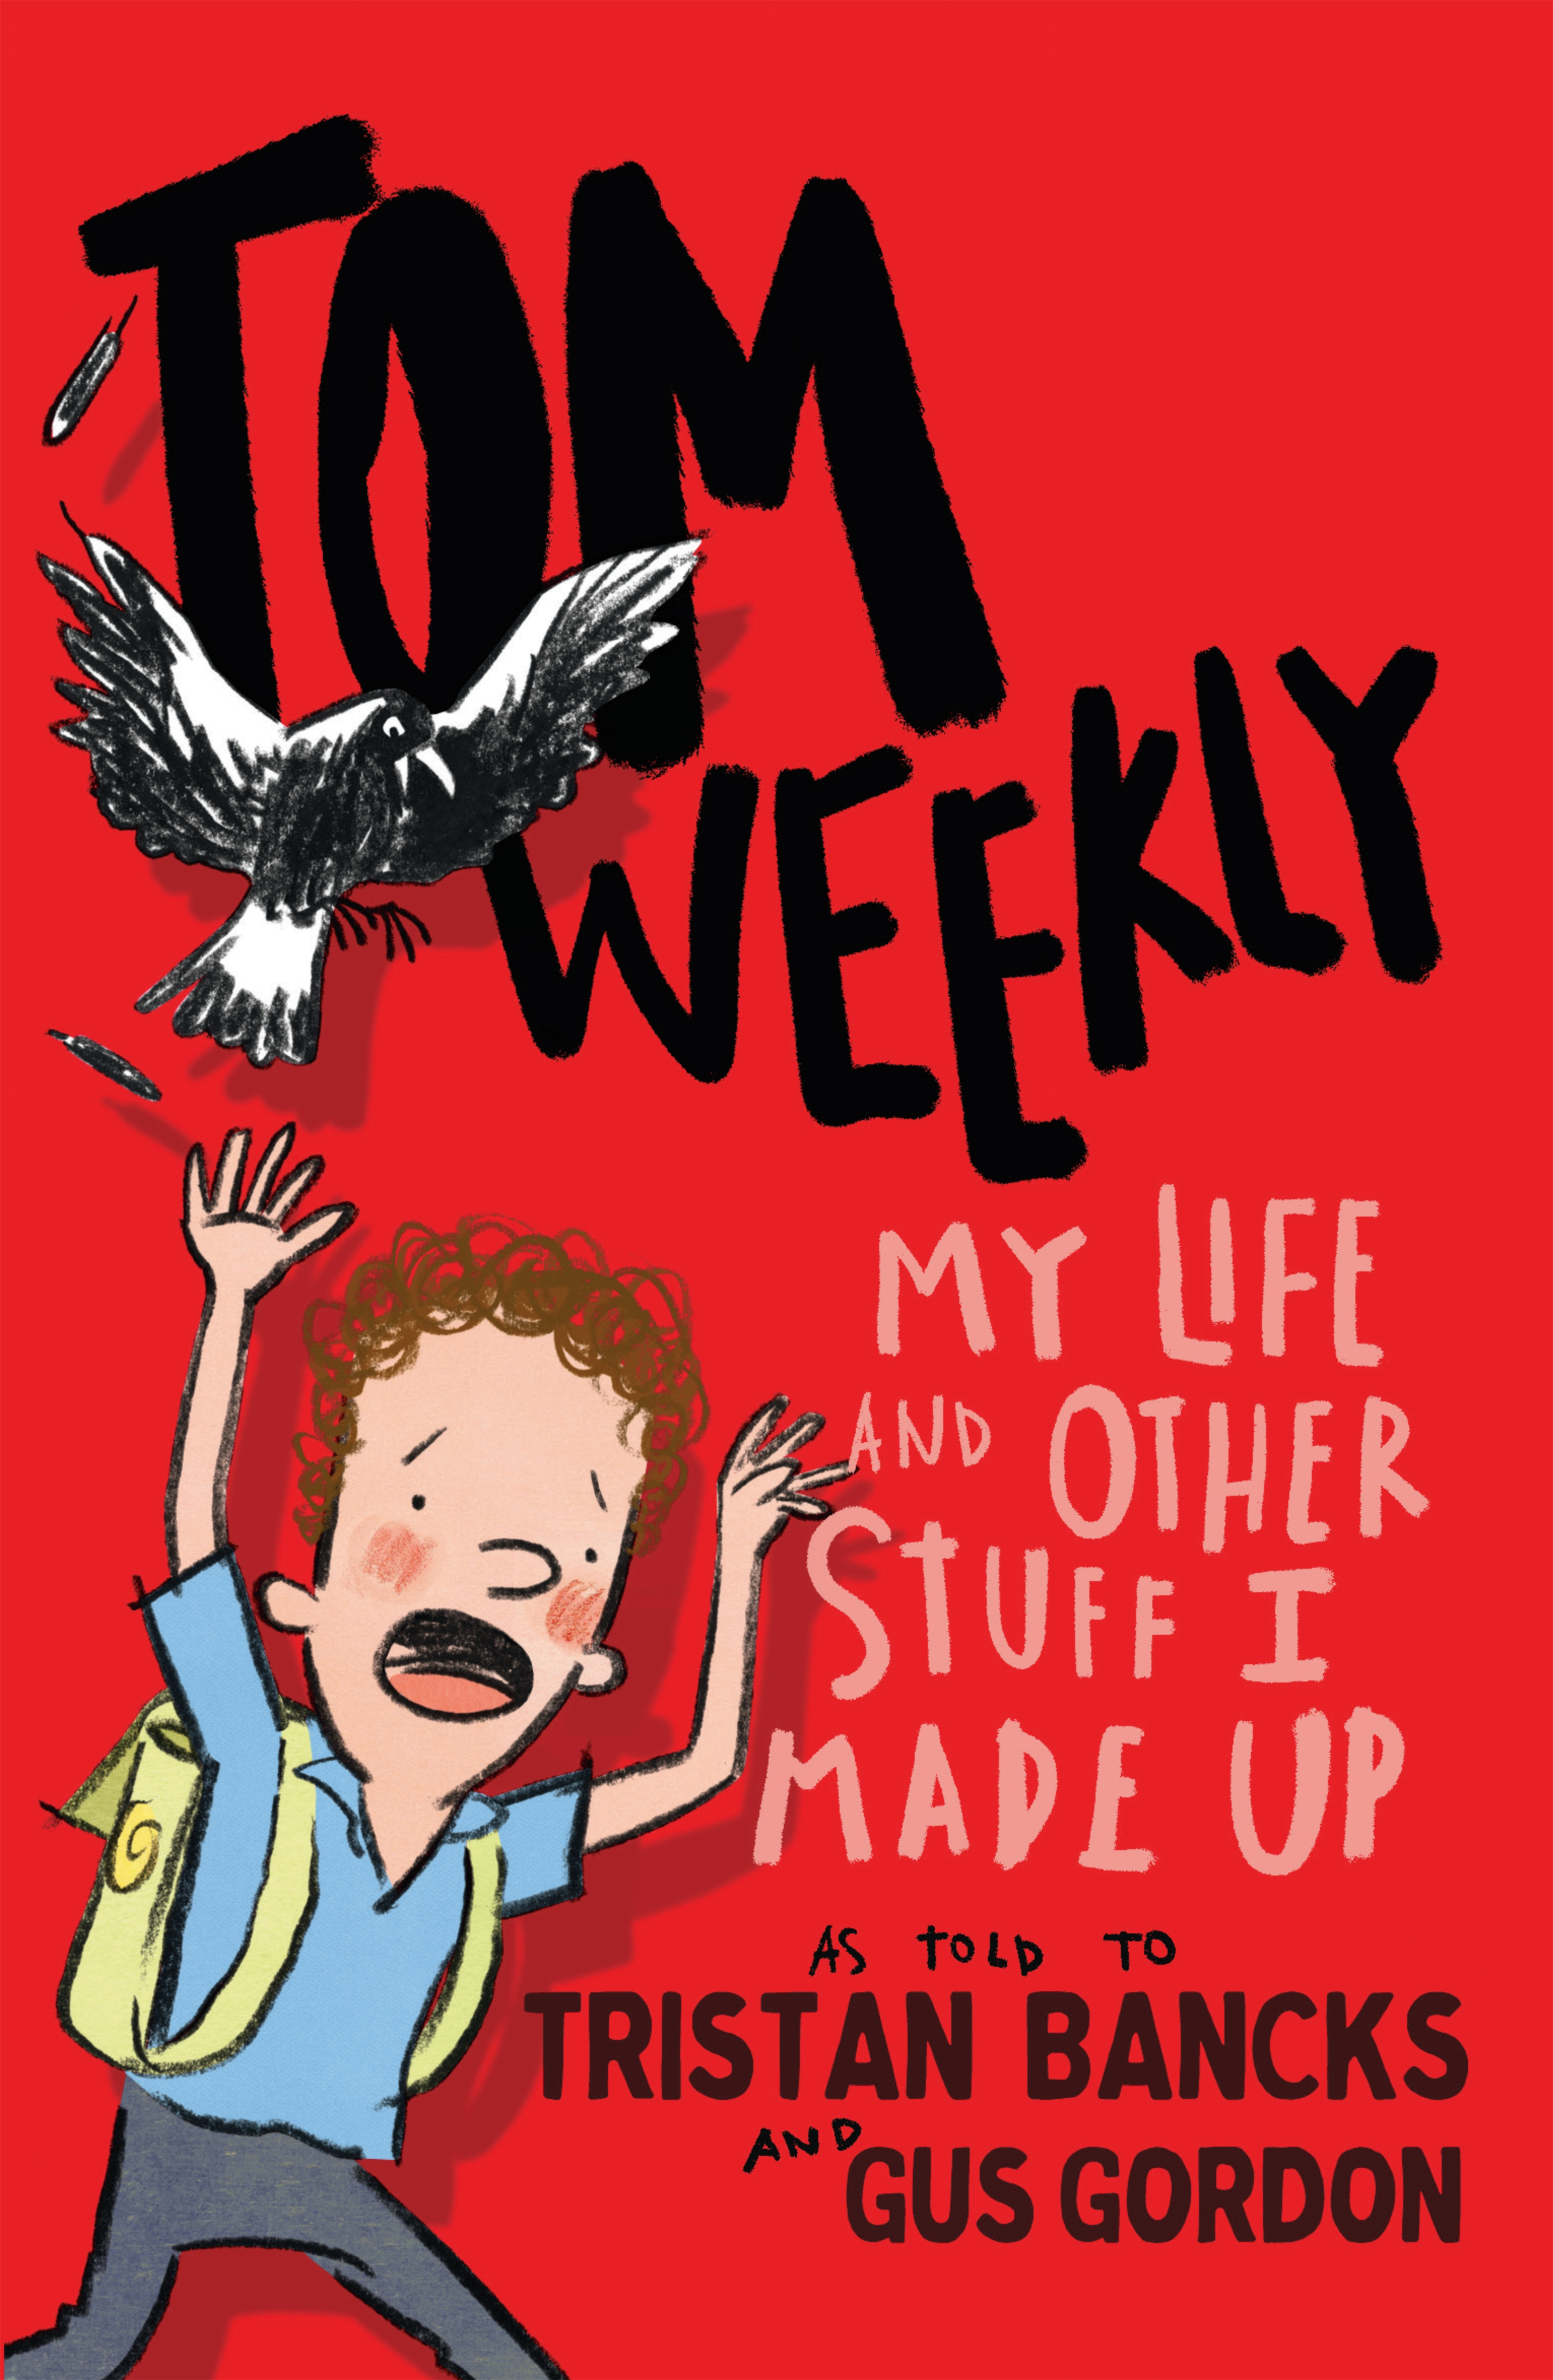 Tom Weekly 1My Life and Other Stuff I Made Up